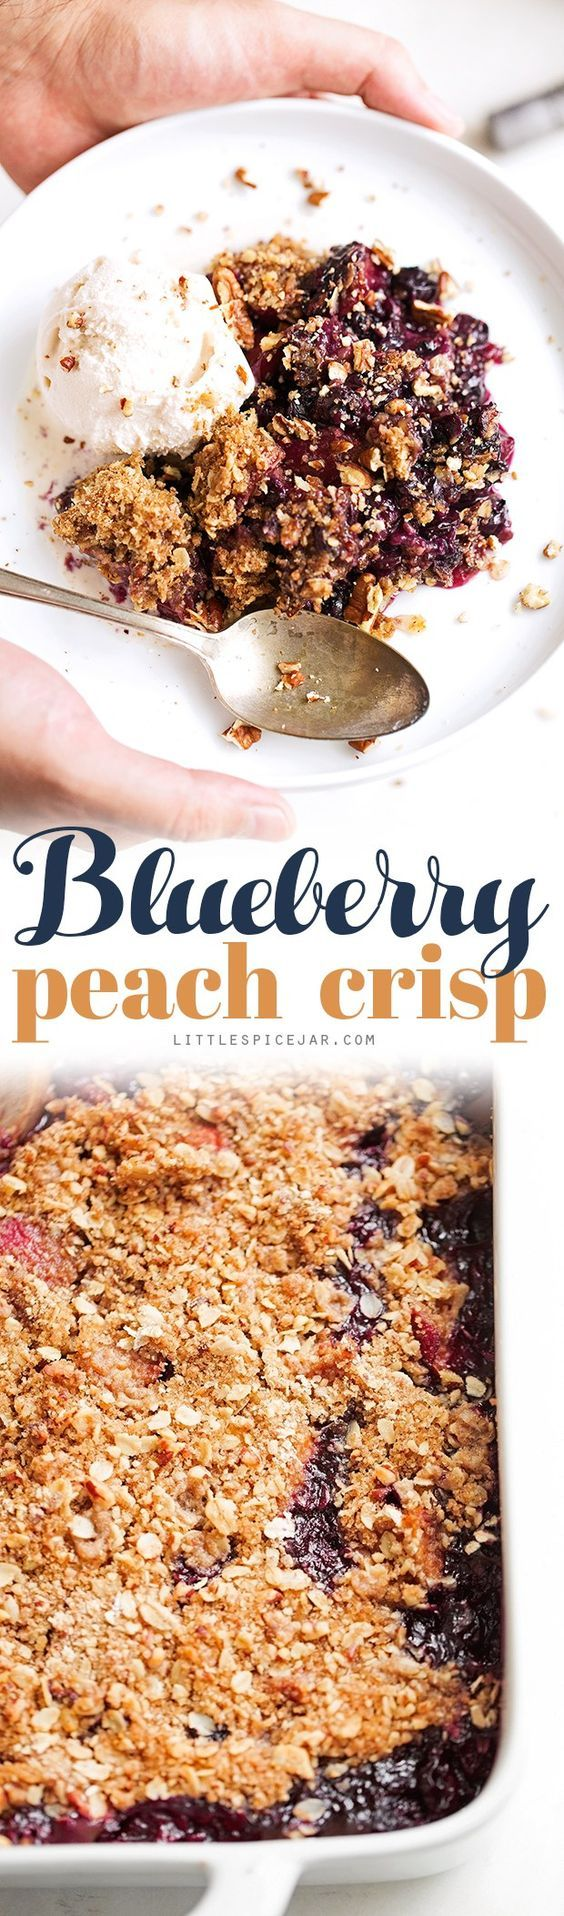 ***Blueberry Peach Crisp ~ a super summery dessert topped with a pecan and oat crumble.